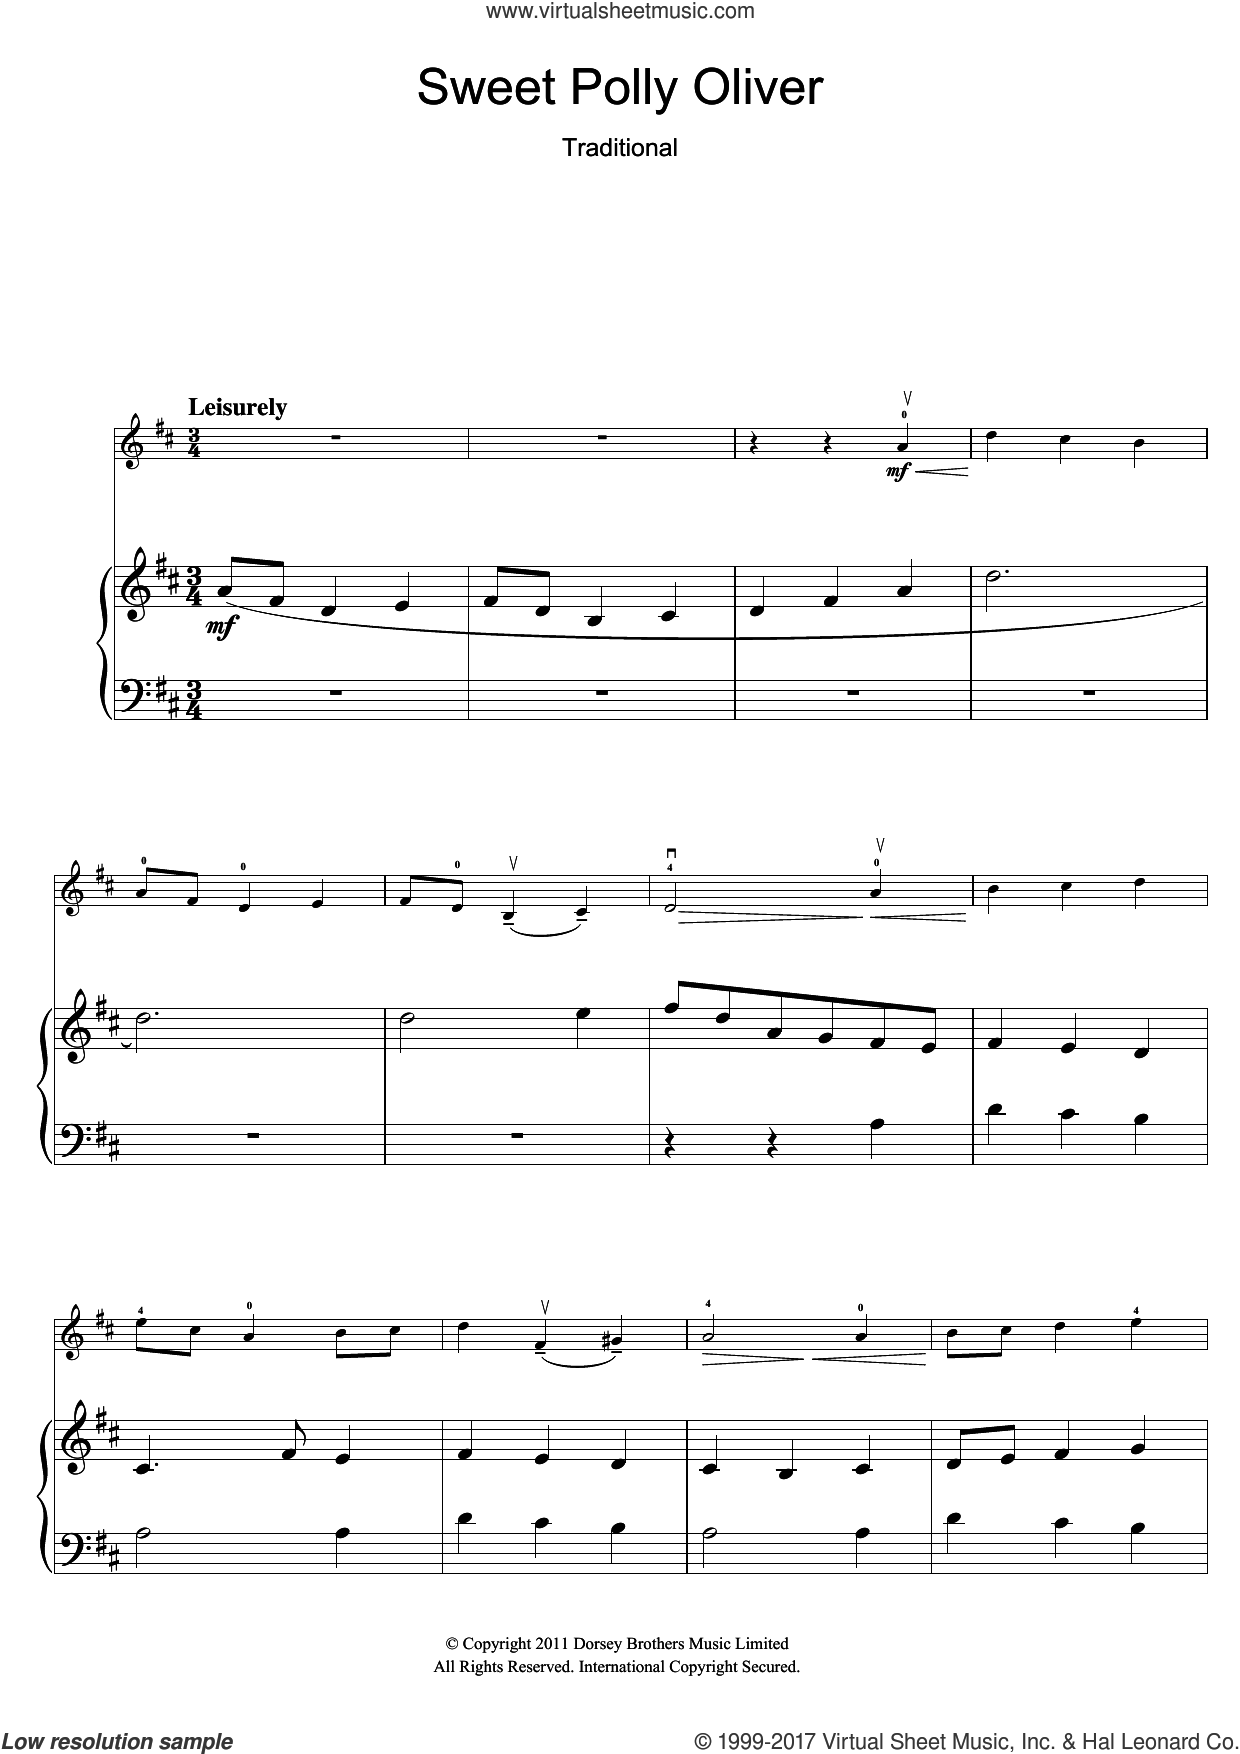 Sweet Polly Oliver sheet music for violin solo, intermediate skill level